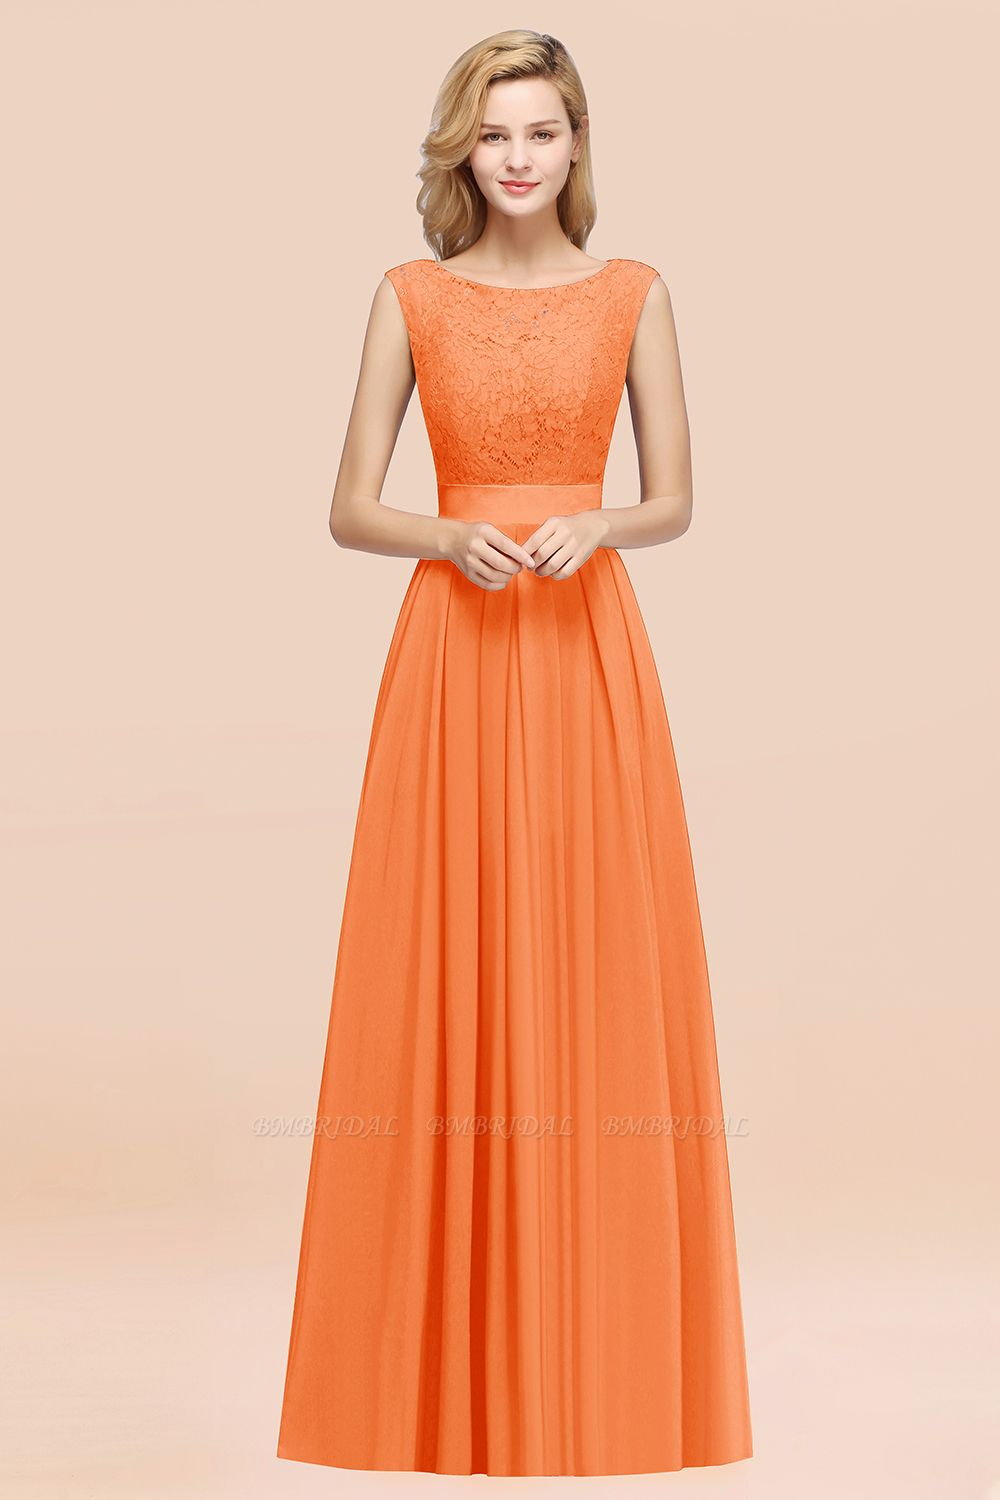 Vintage Sleeveless Lace Bridesmaid Dresses Affordable Chiffon Wedding Party Dress Online